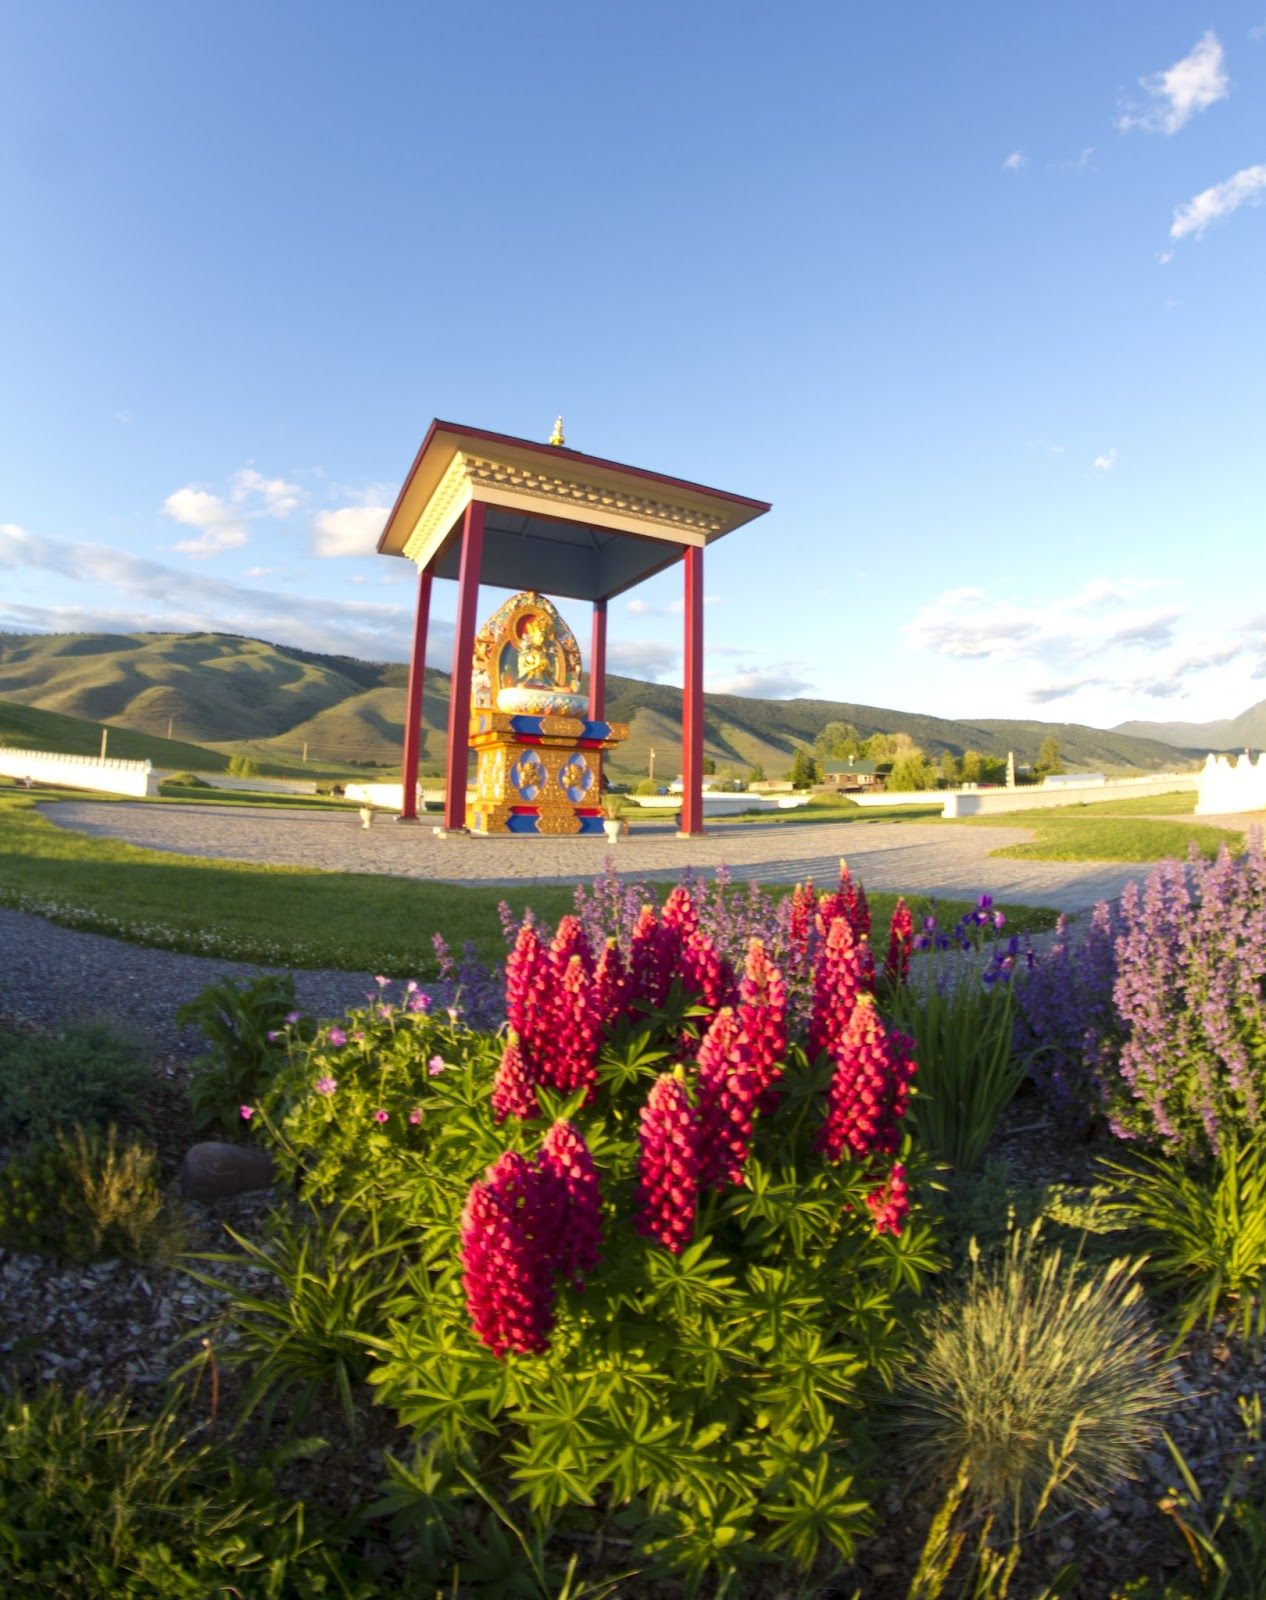 Moneyless world free world priceless world out of the wild into missoula Garden of one thousand buddhas